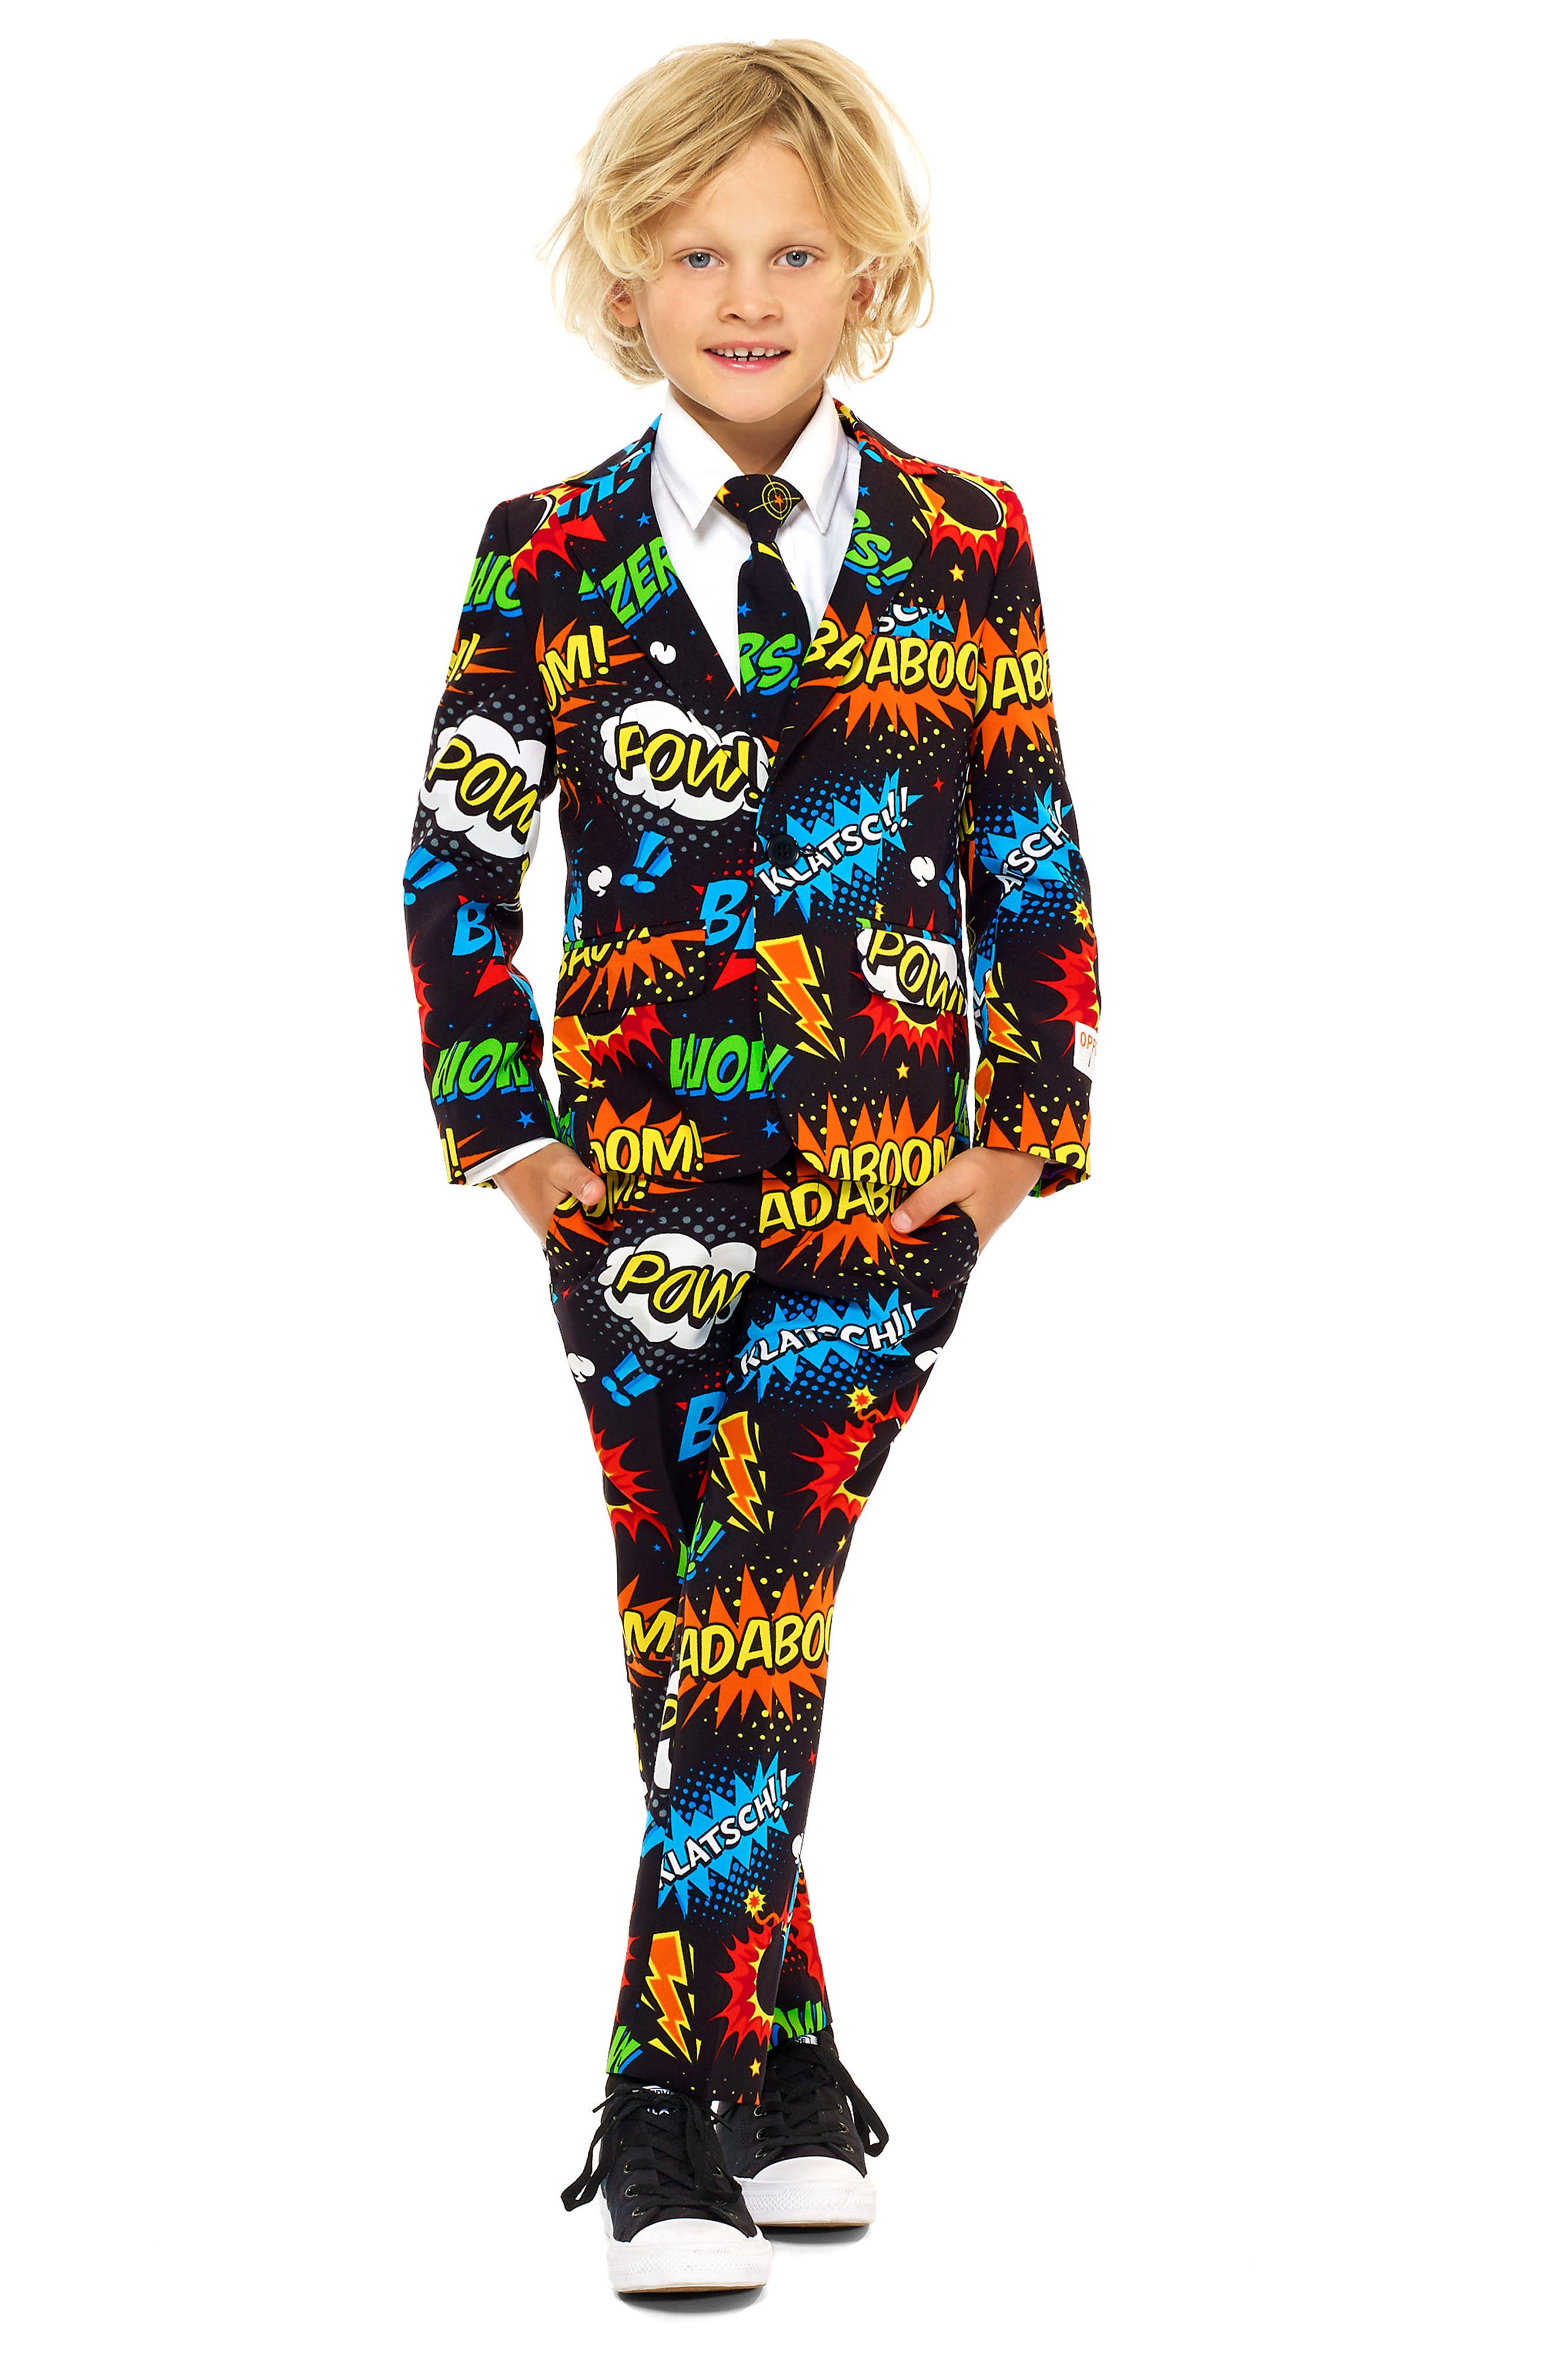 Main Image - Oppo Badaboom Two-Piece Suit with Tie (Toddler Boys, Little Boys & Big Boys)